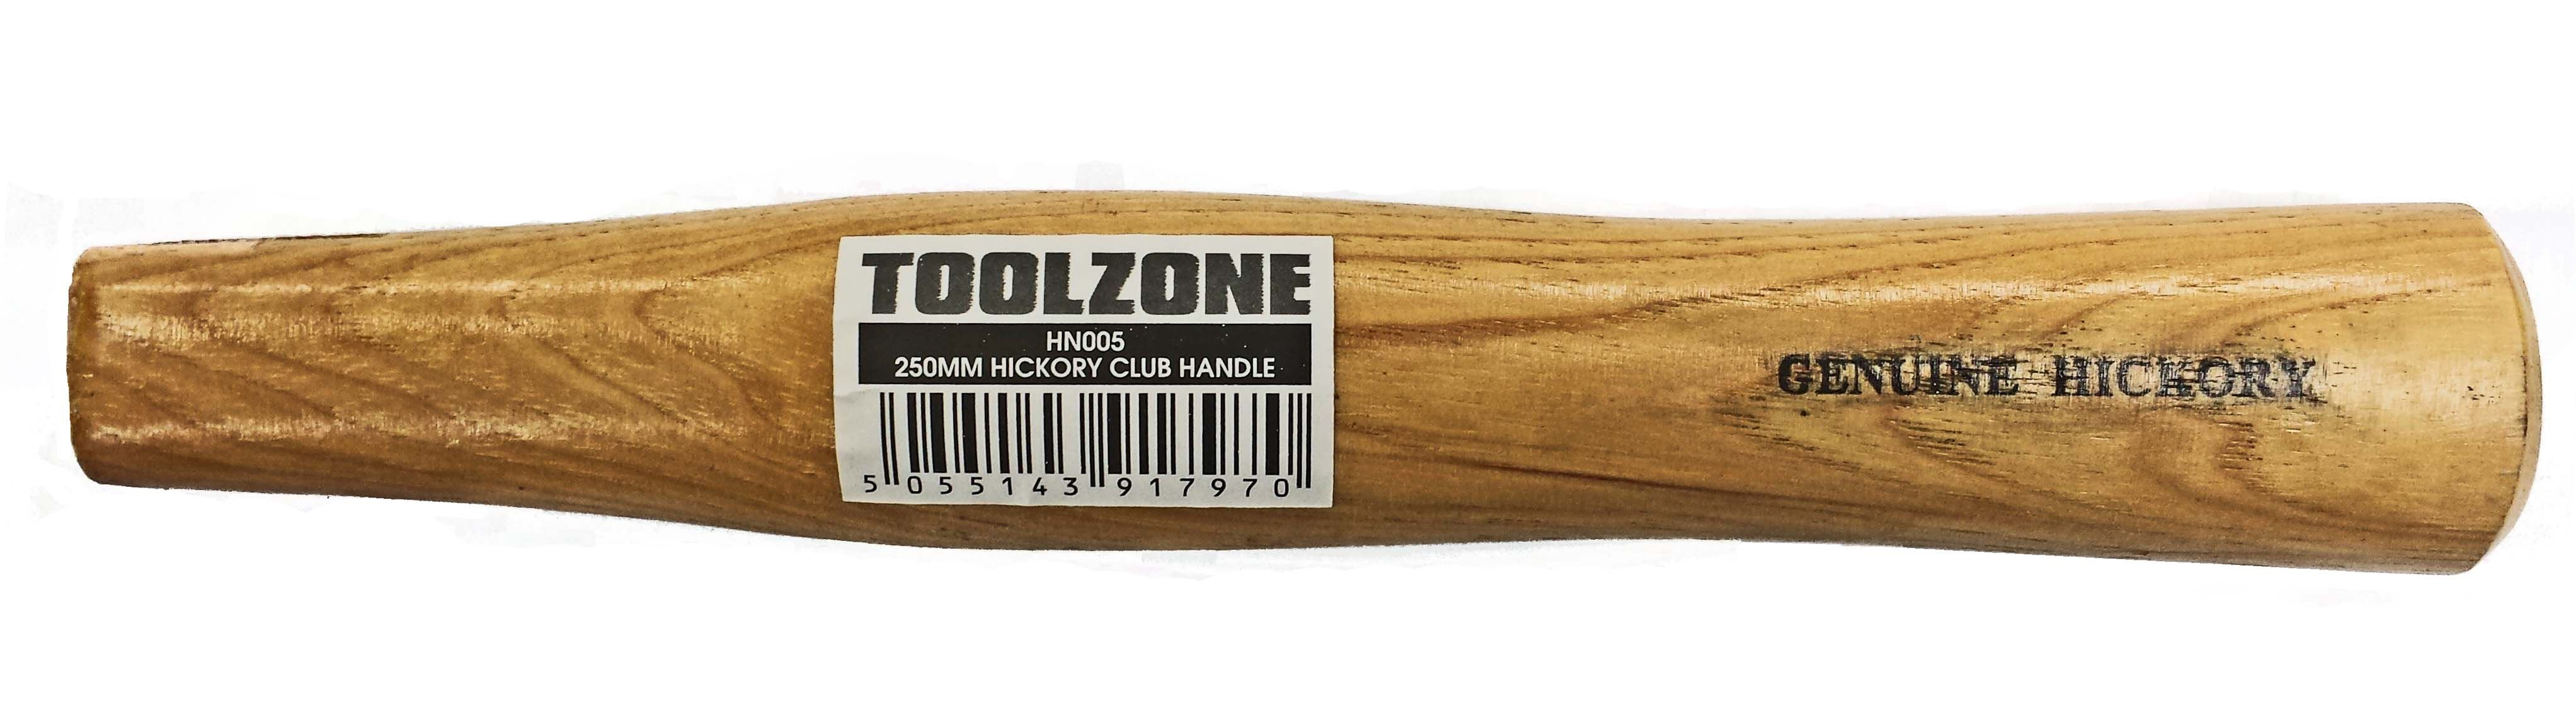 Toolzone 250Mm Hickory Club Hammer Handle